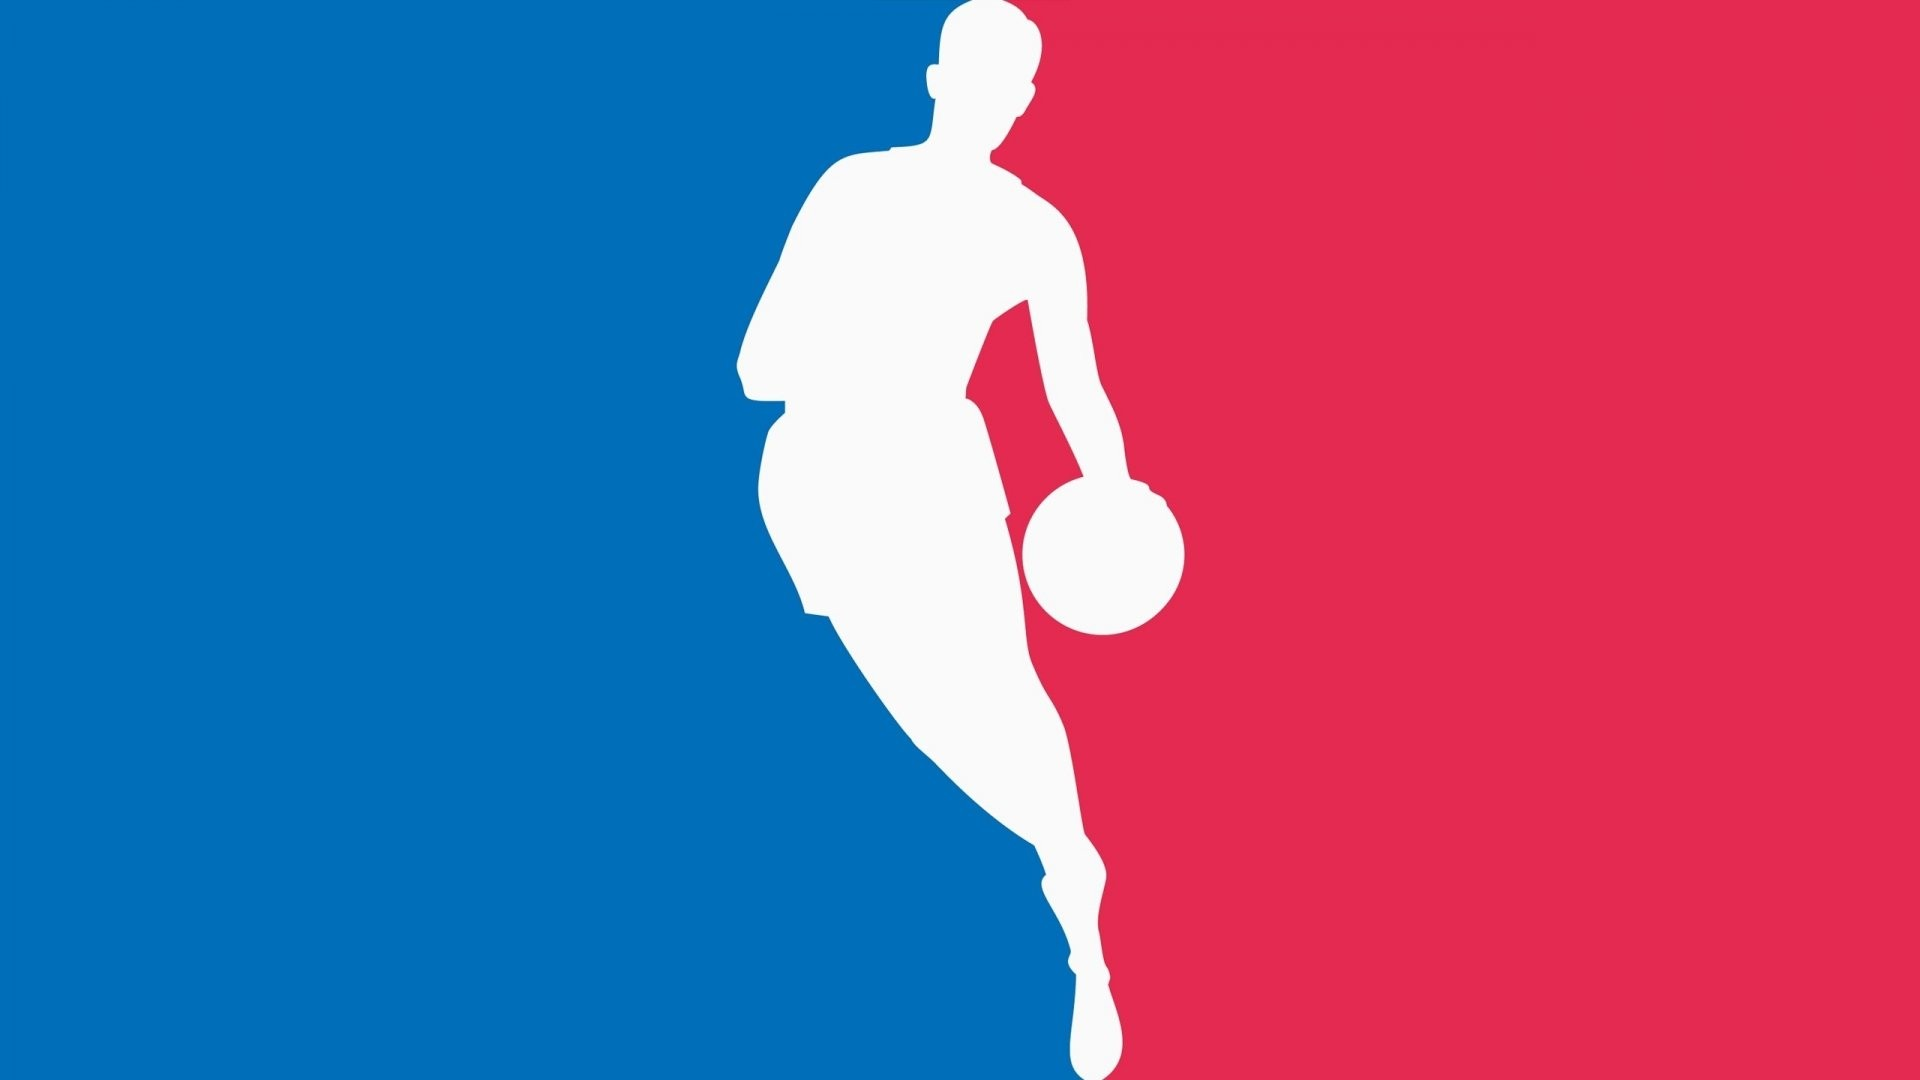 Res: 1920x1080, nba logo 866062